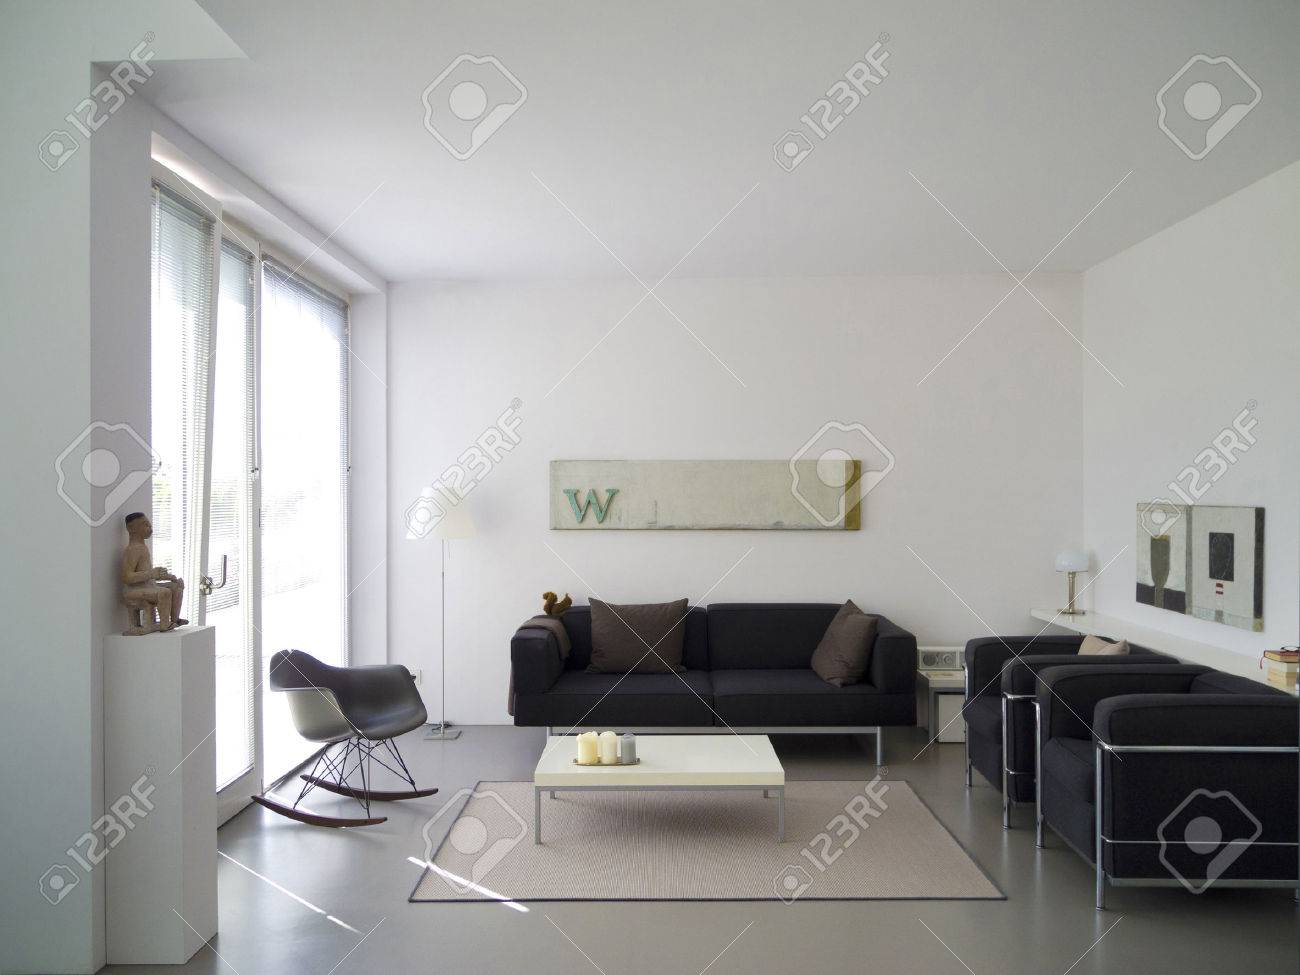 Modern Private Living Room With Copy Space For Your Own Images Stock ...